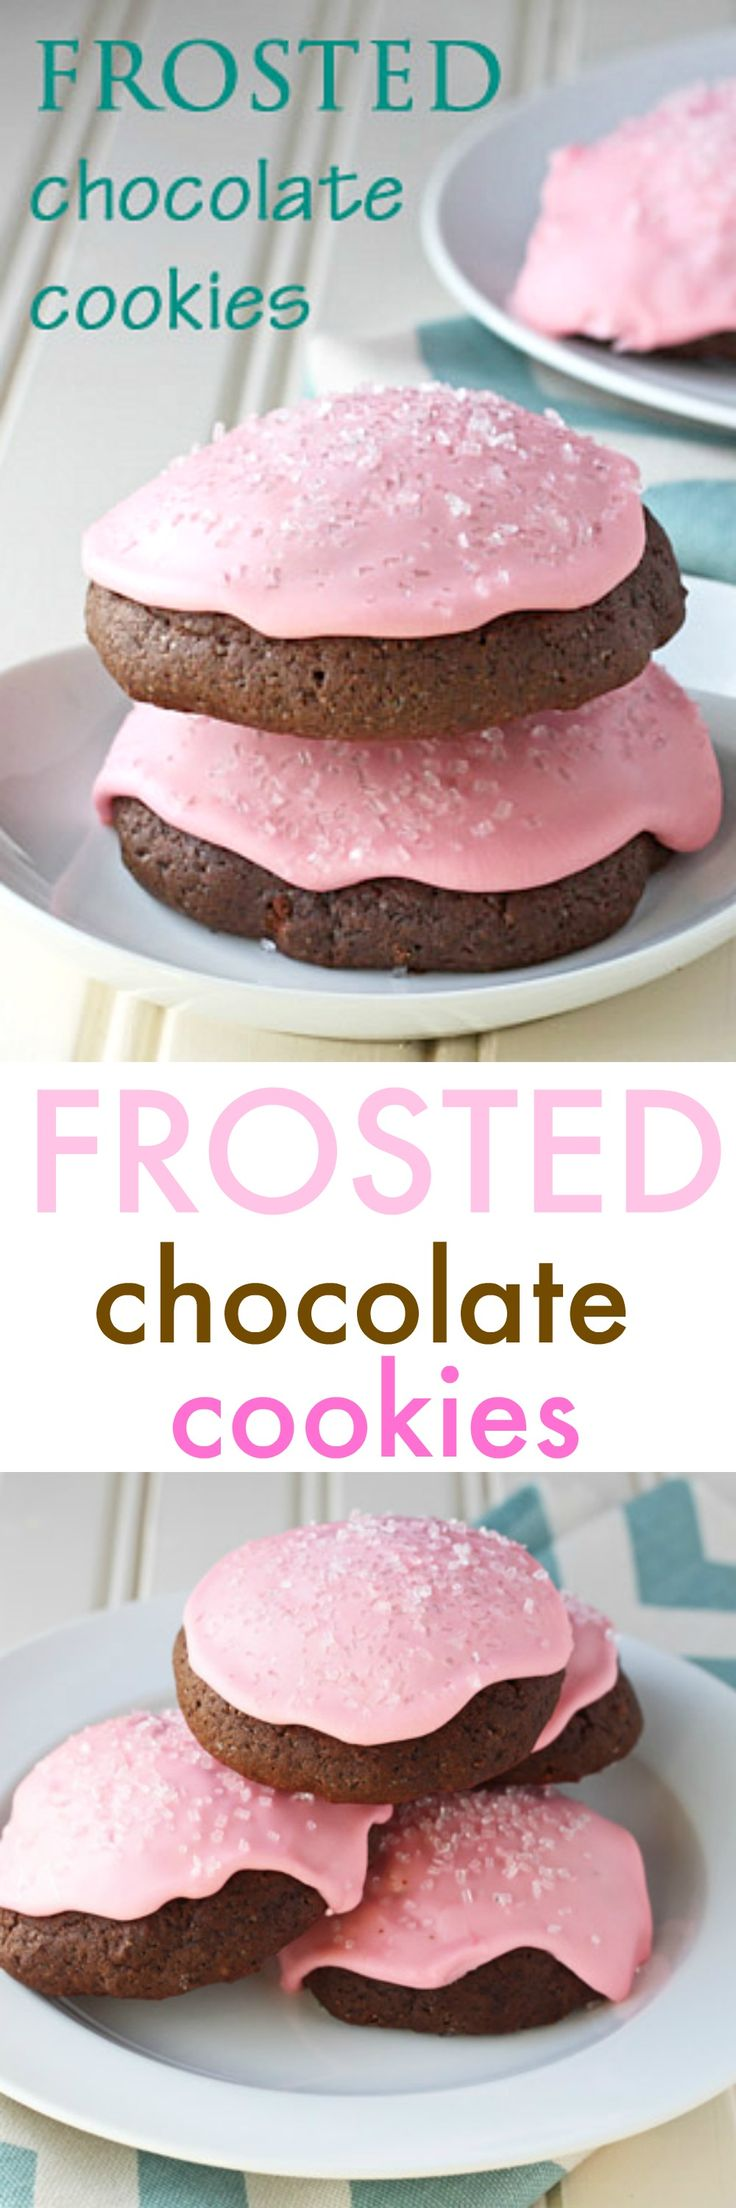 Valentine's Day pink cookies: pink frosting chocolate cookies. Soft, cake cookies with loads of pink frosting and sprinkles! @dessertfortwo